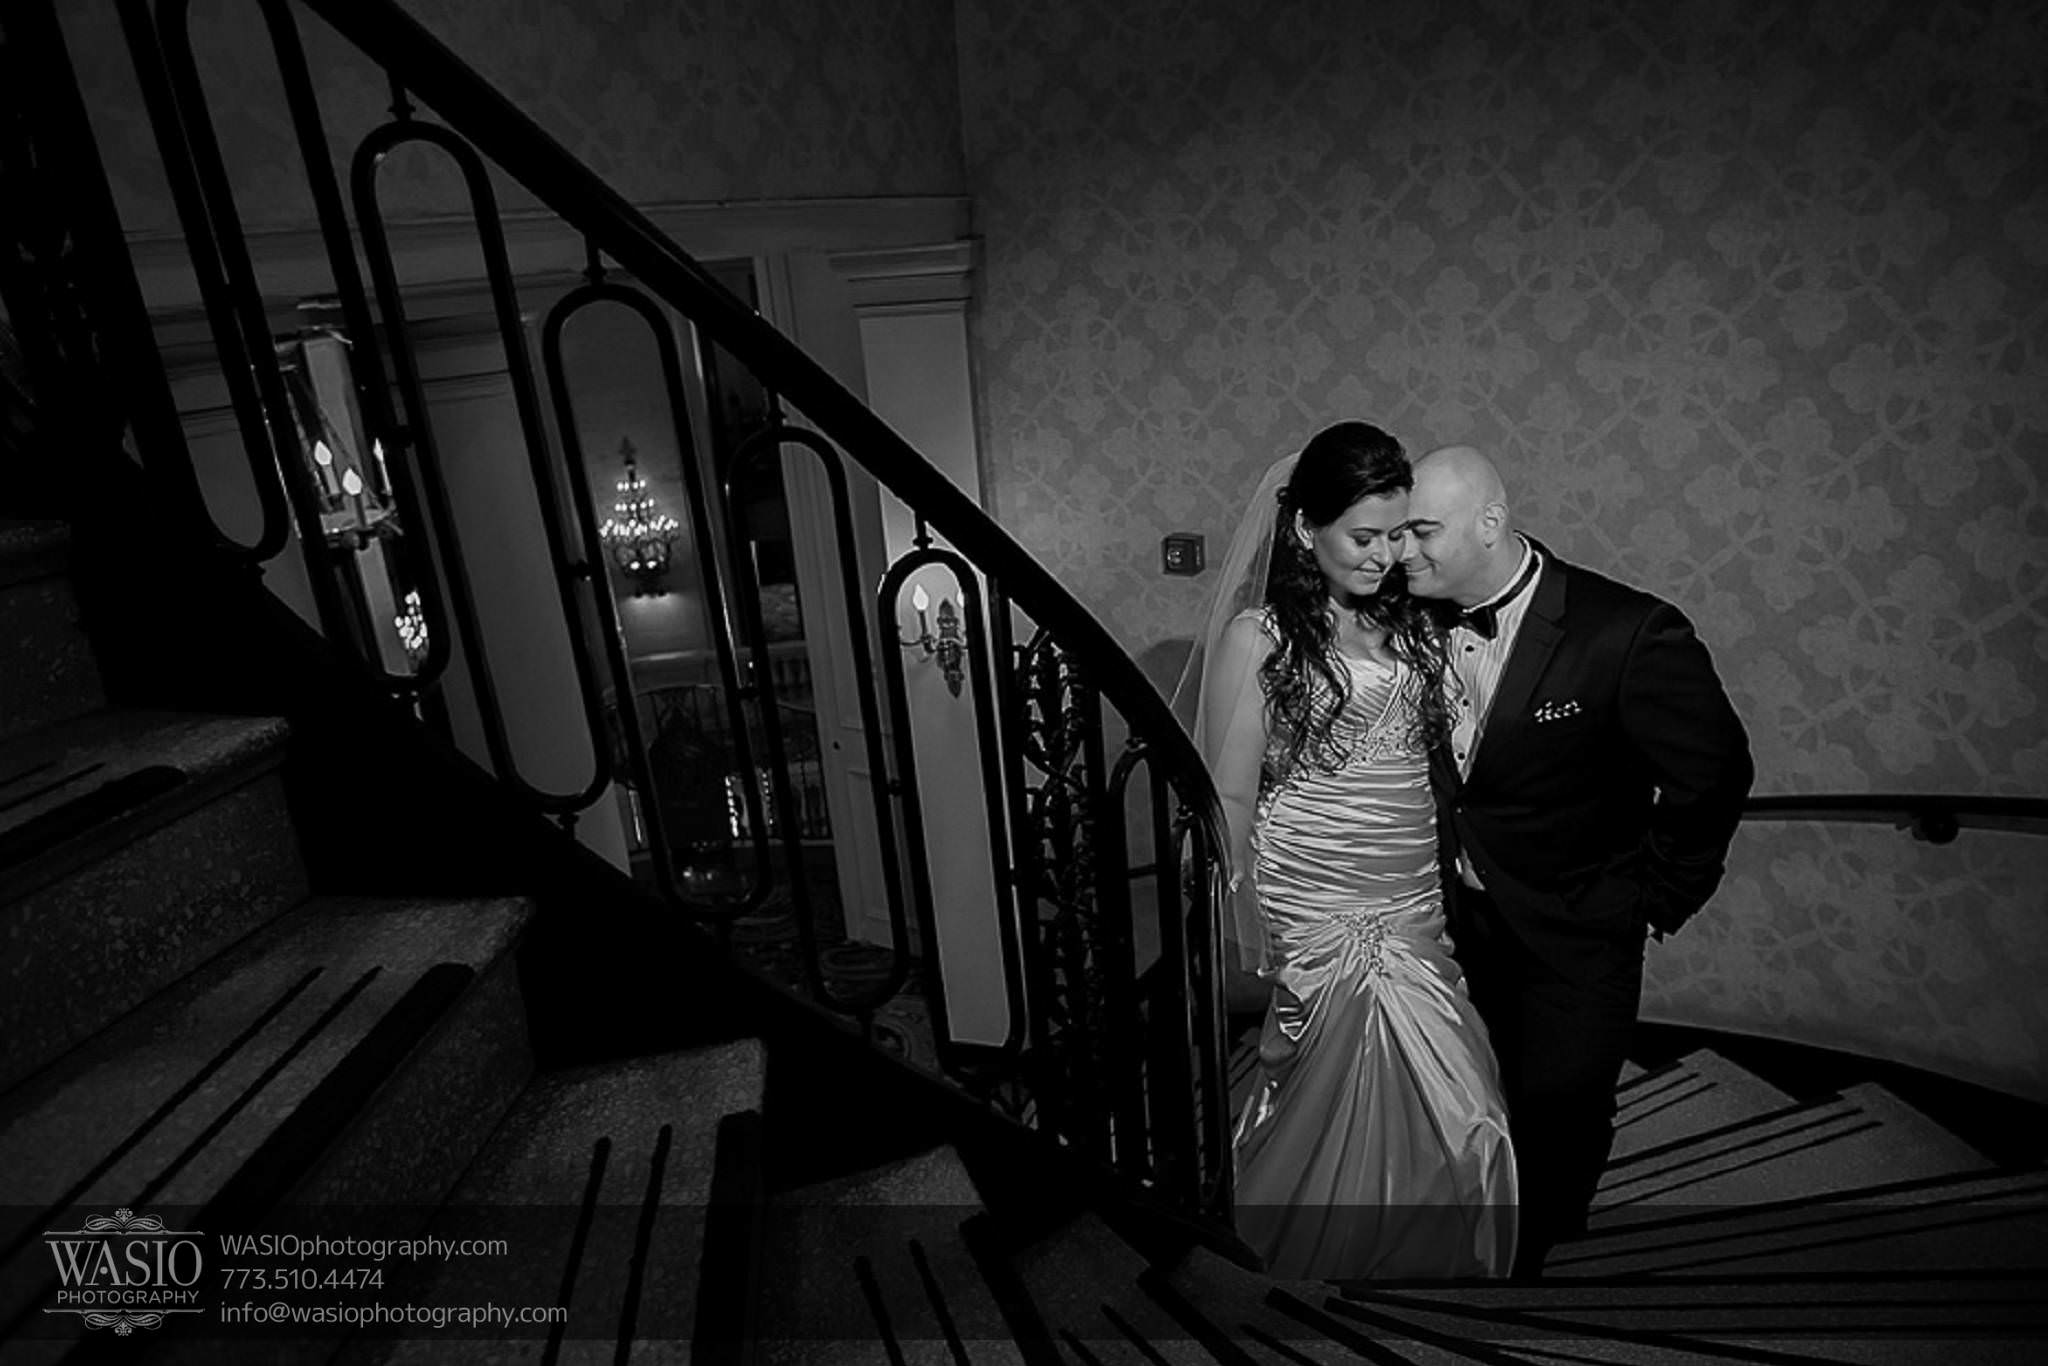 Chicago-wedding-photos-stairwell-black-white-053 Chicago Wedding Photos - Svetlana + Yuriy